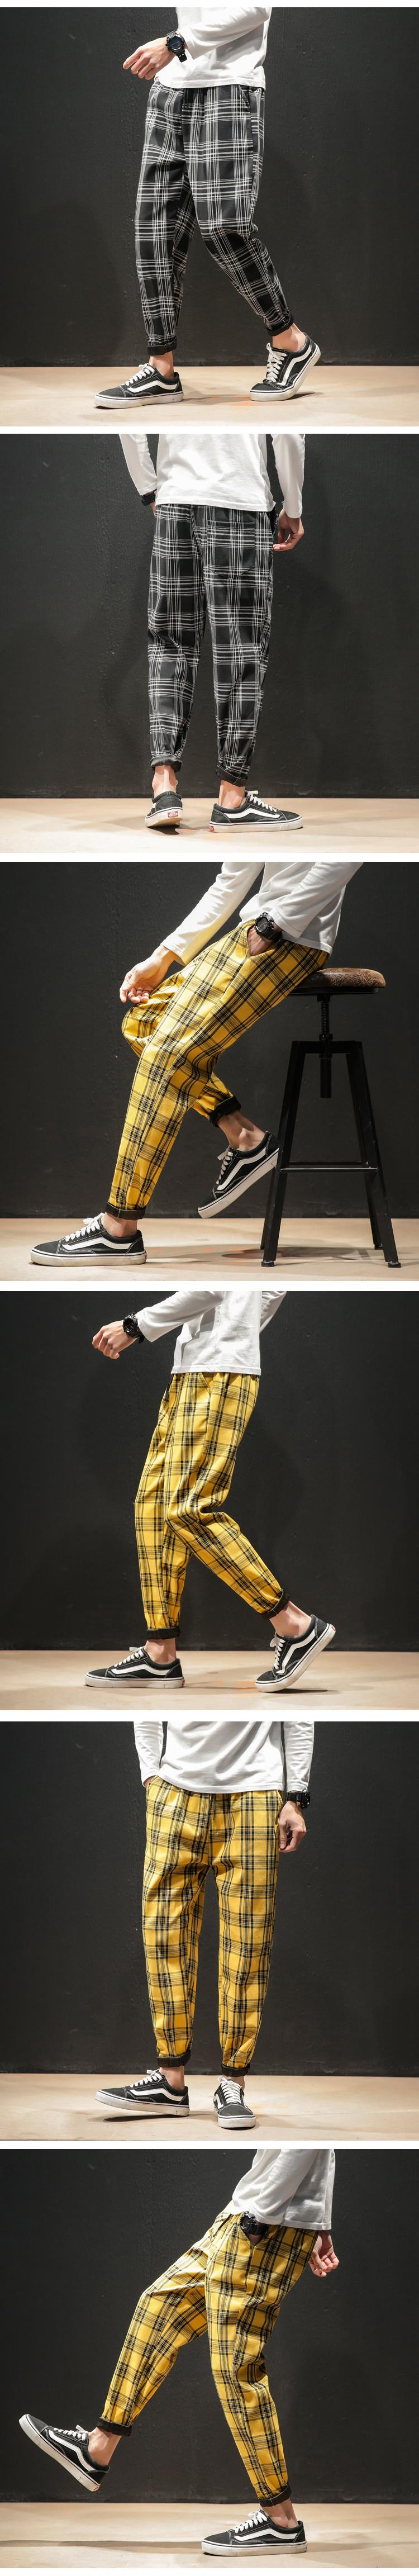 H85201ee0ac7f4976aa503256dc526137L Dropshipping Japanese Streerwear Men Plaid Pants 2019 Autumn Fashion Slim Man Casual Trousers Korean Male Harem Pants